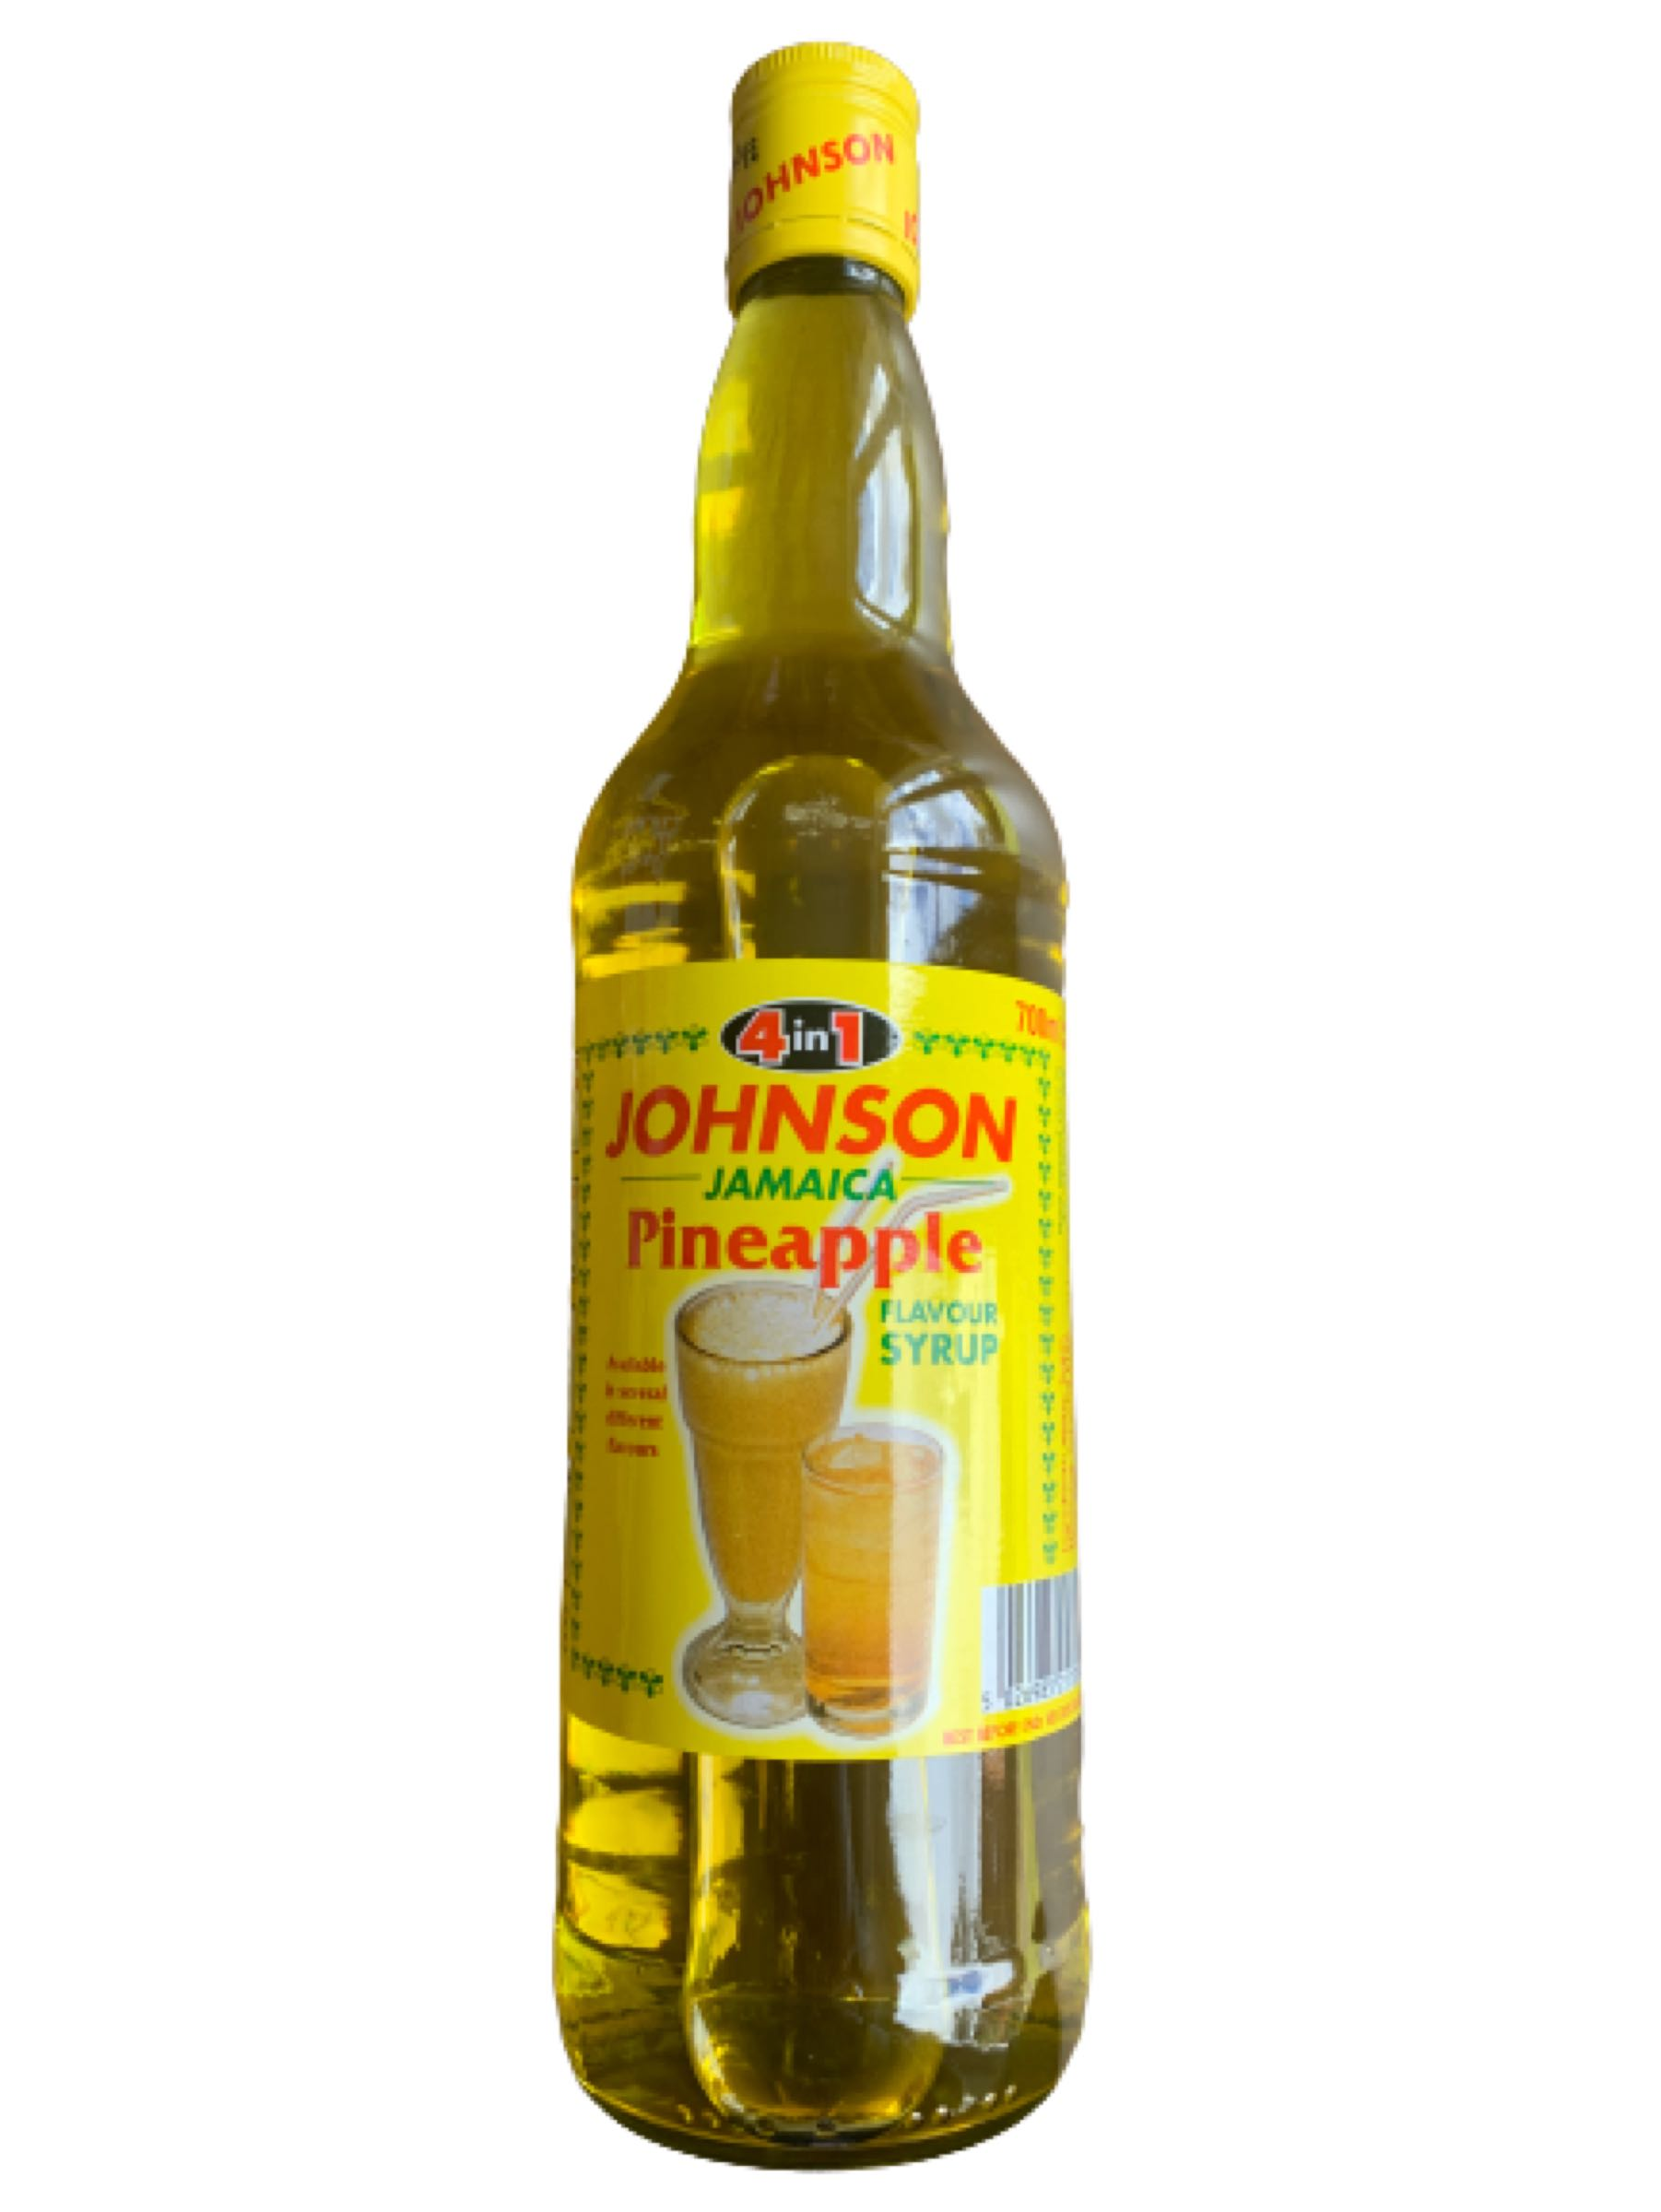 Johnson's 4-1 Pineapple Syrup